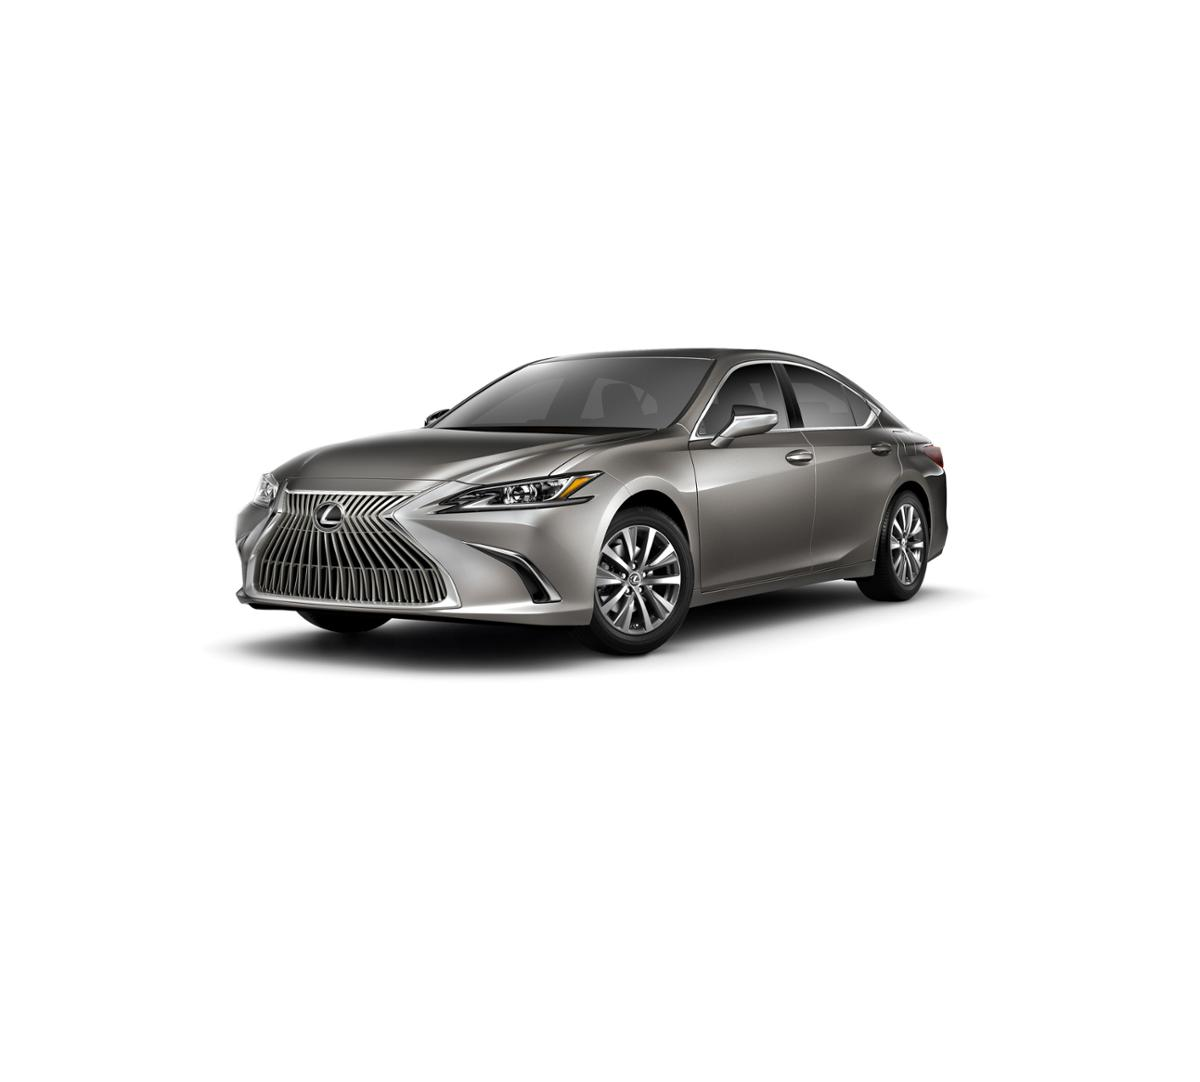 2019 Lexus ES 350 Vehicle Photo in Evansville, IN 47715